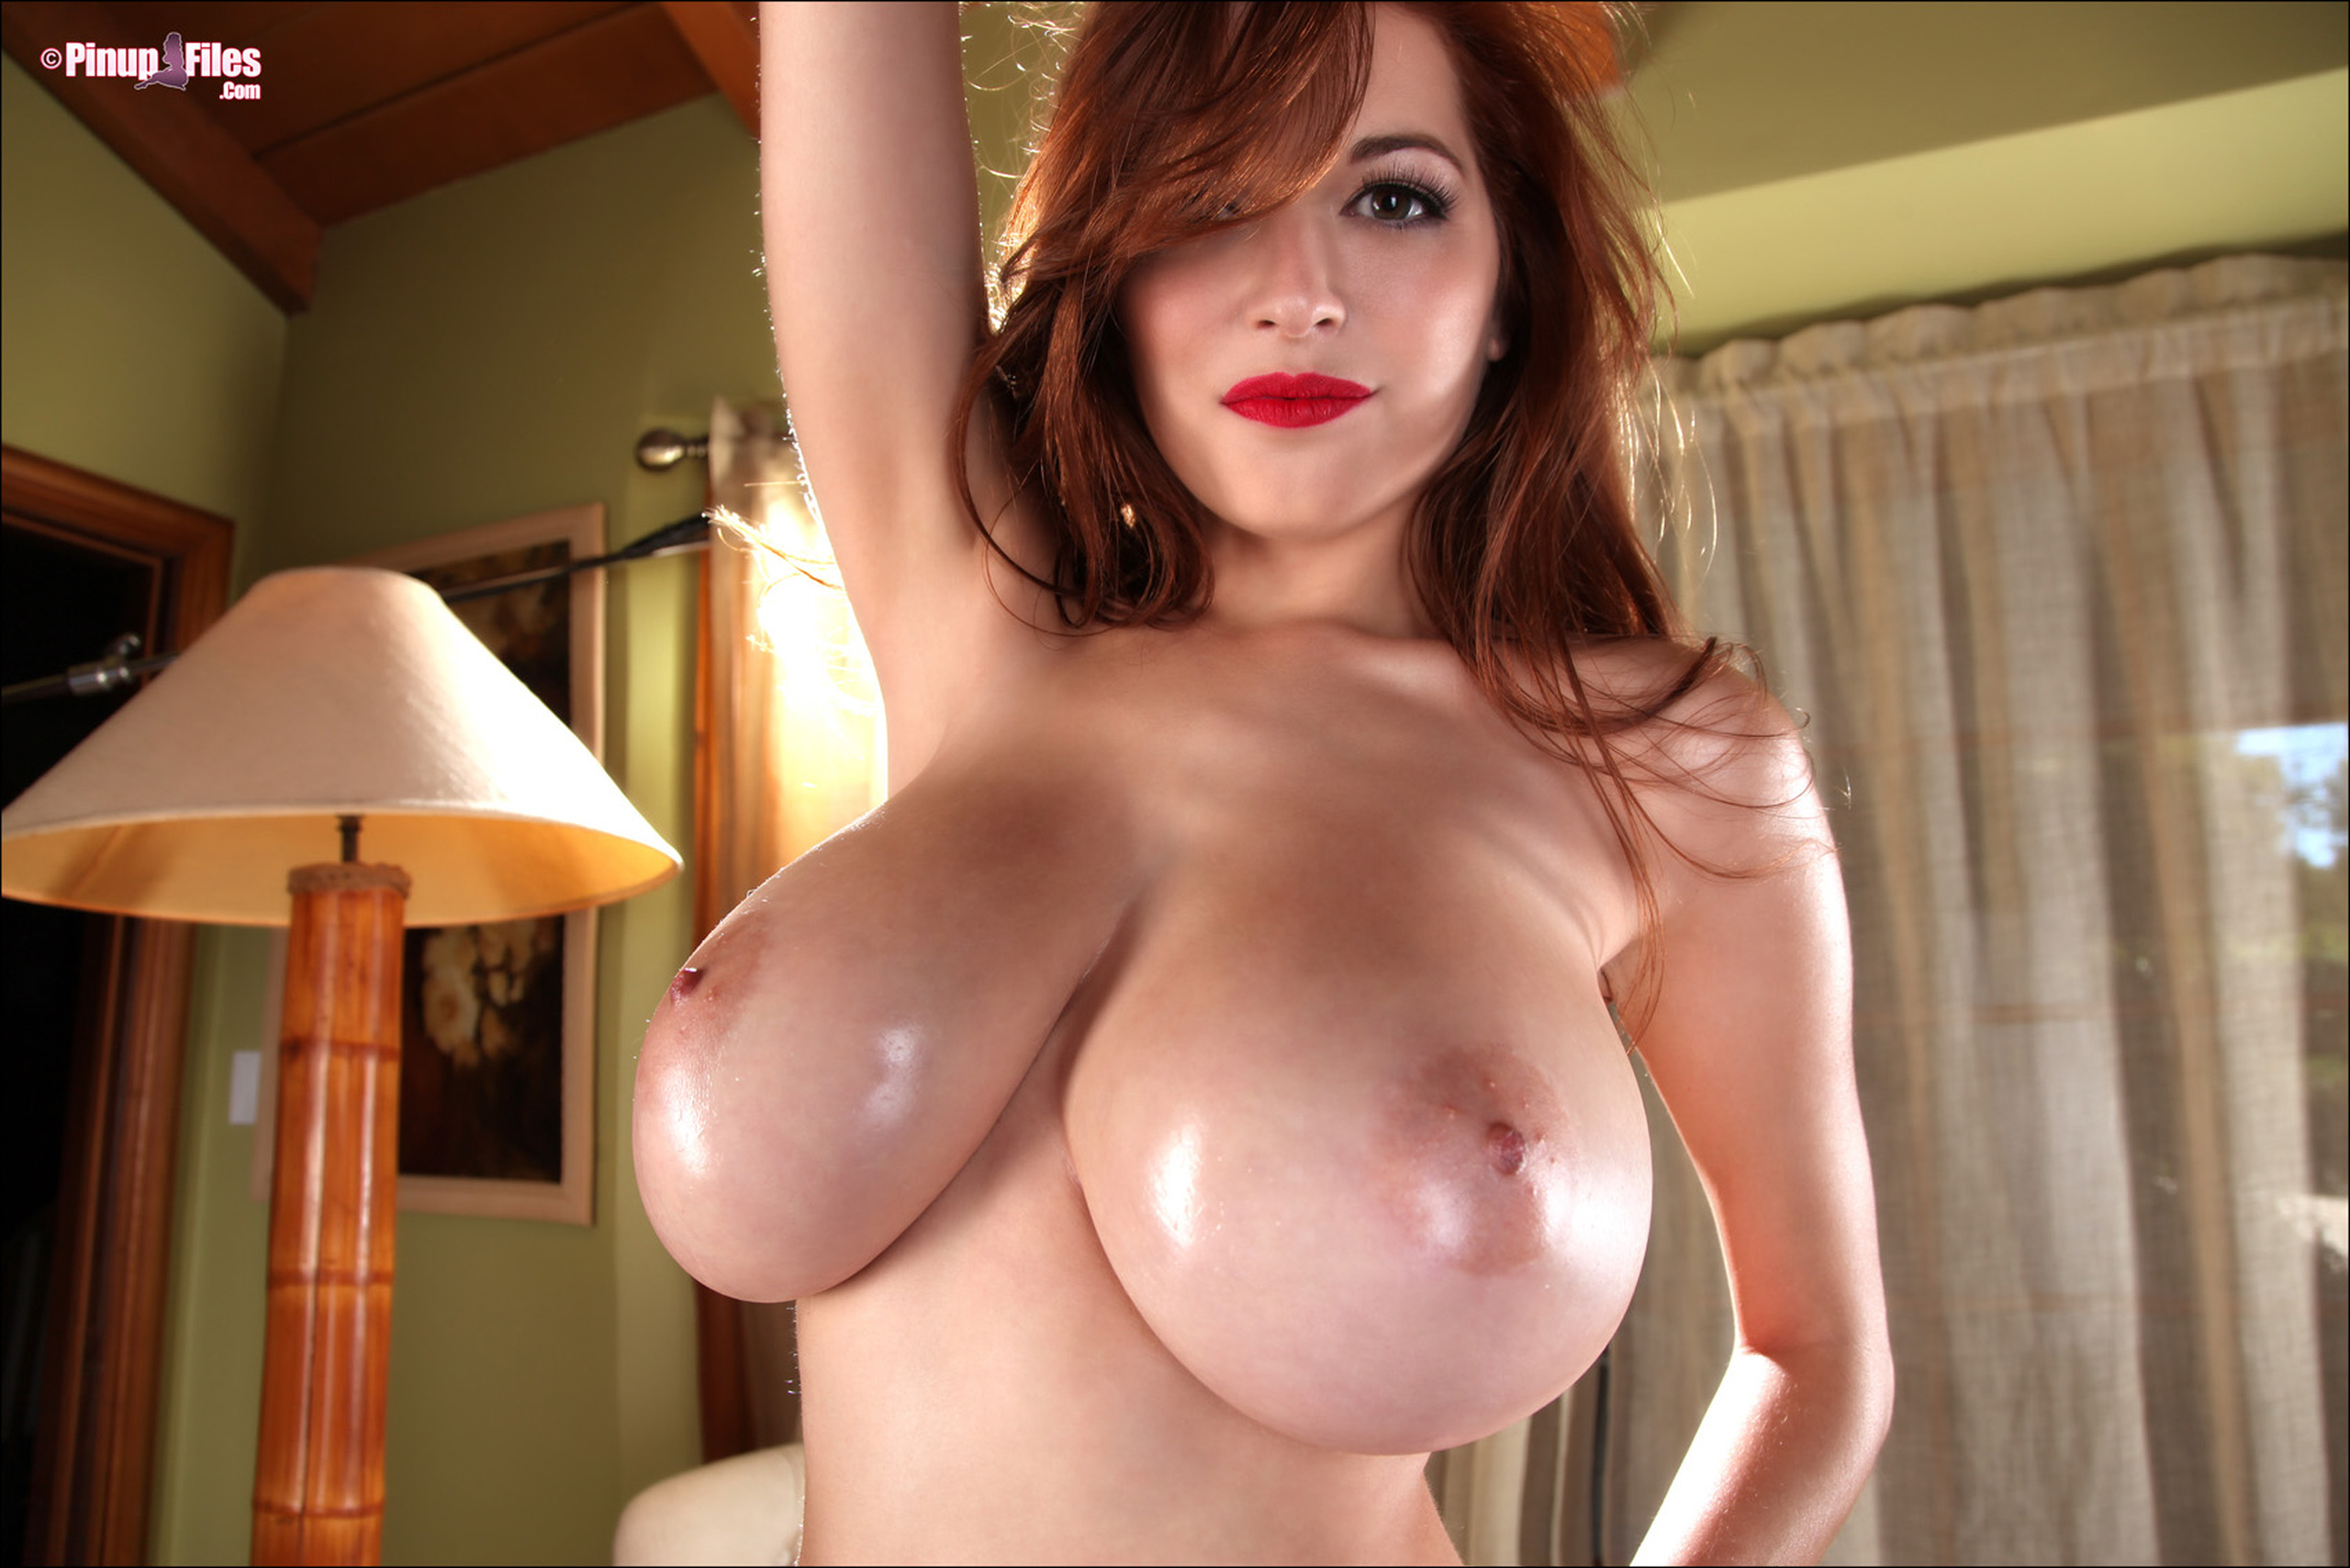 Playing with boobs pics-1502